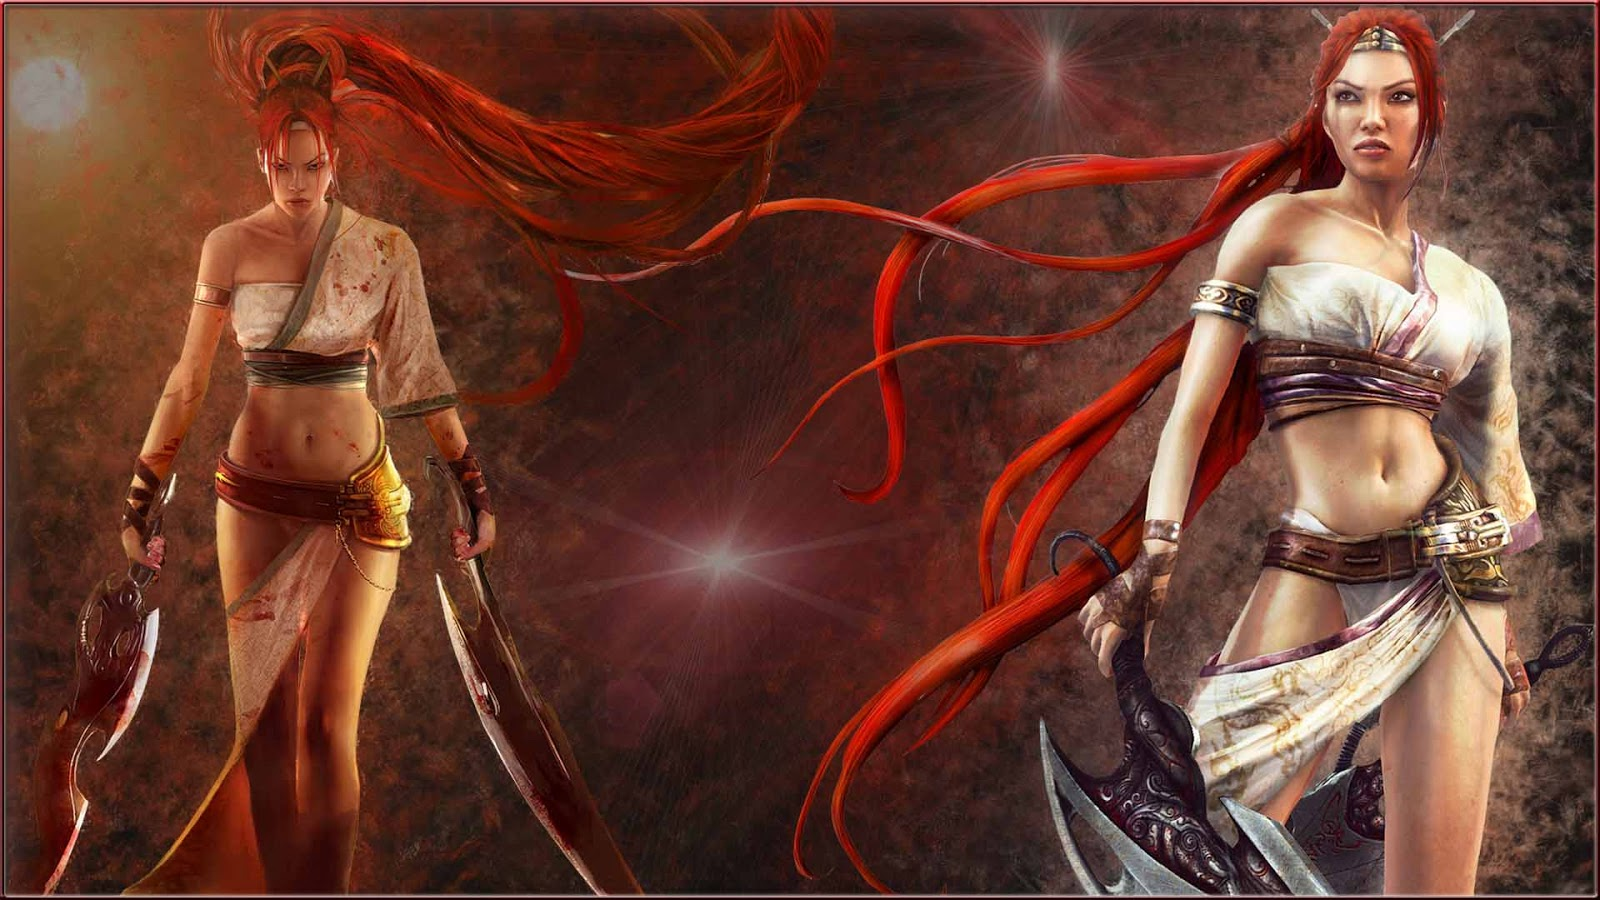 33 Heavenly Sword HD Wallpapers | Backgrounds - Wallpaper Abyss